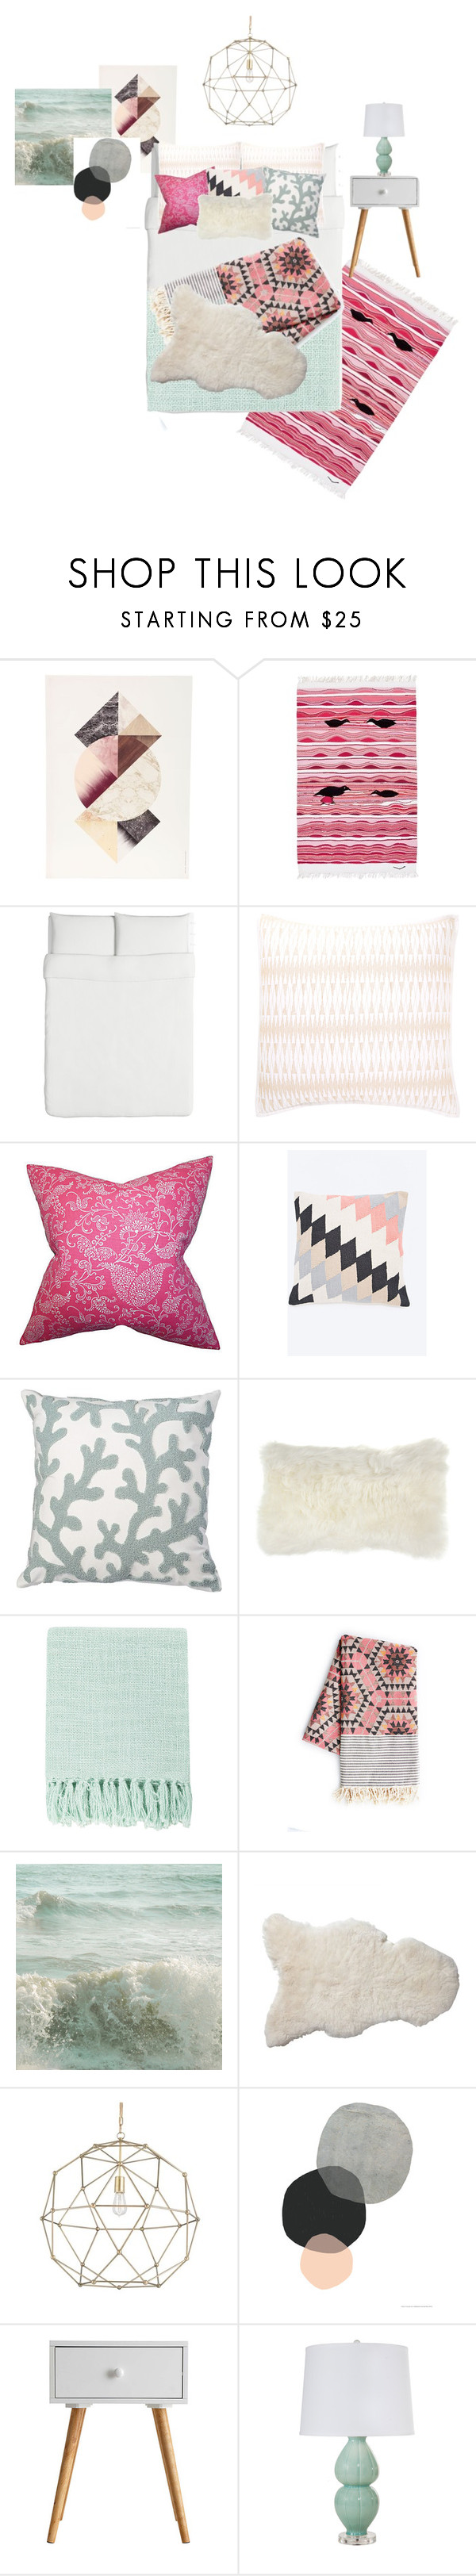 """""""Bedroom Design"""" by i-dont-do-mornings ❤ liked on Polyvore featuring interior, interiors, interior design, home, home decor, interior decorating, ferm LIVING, DwellStudio, Amara and Surya"""